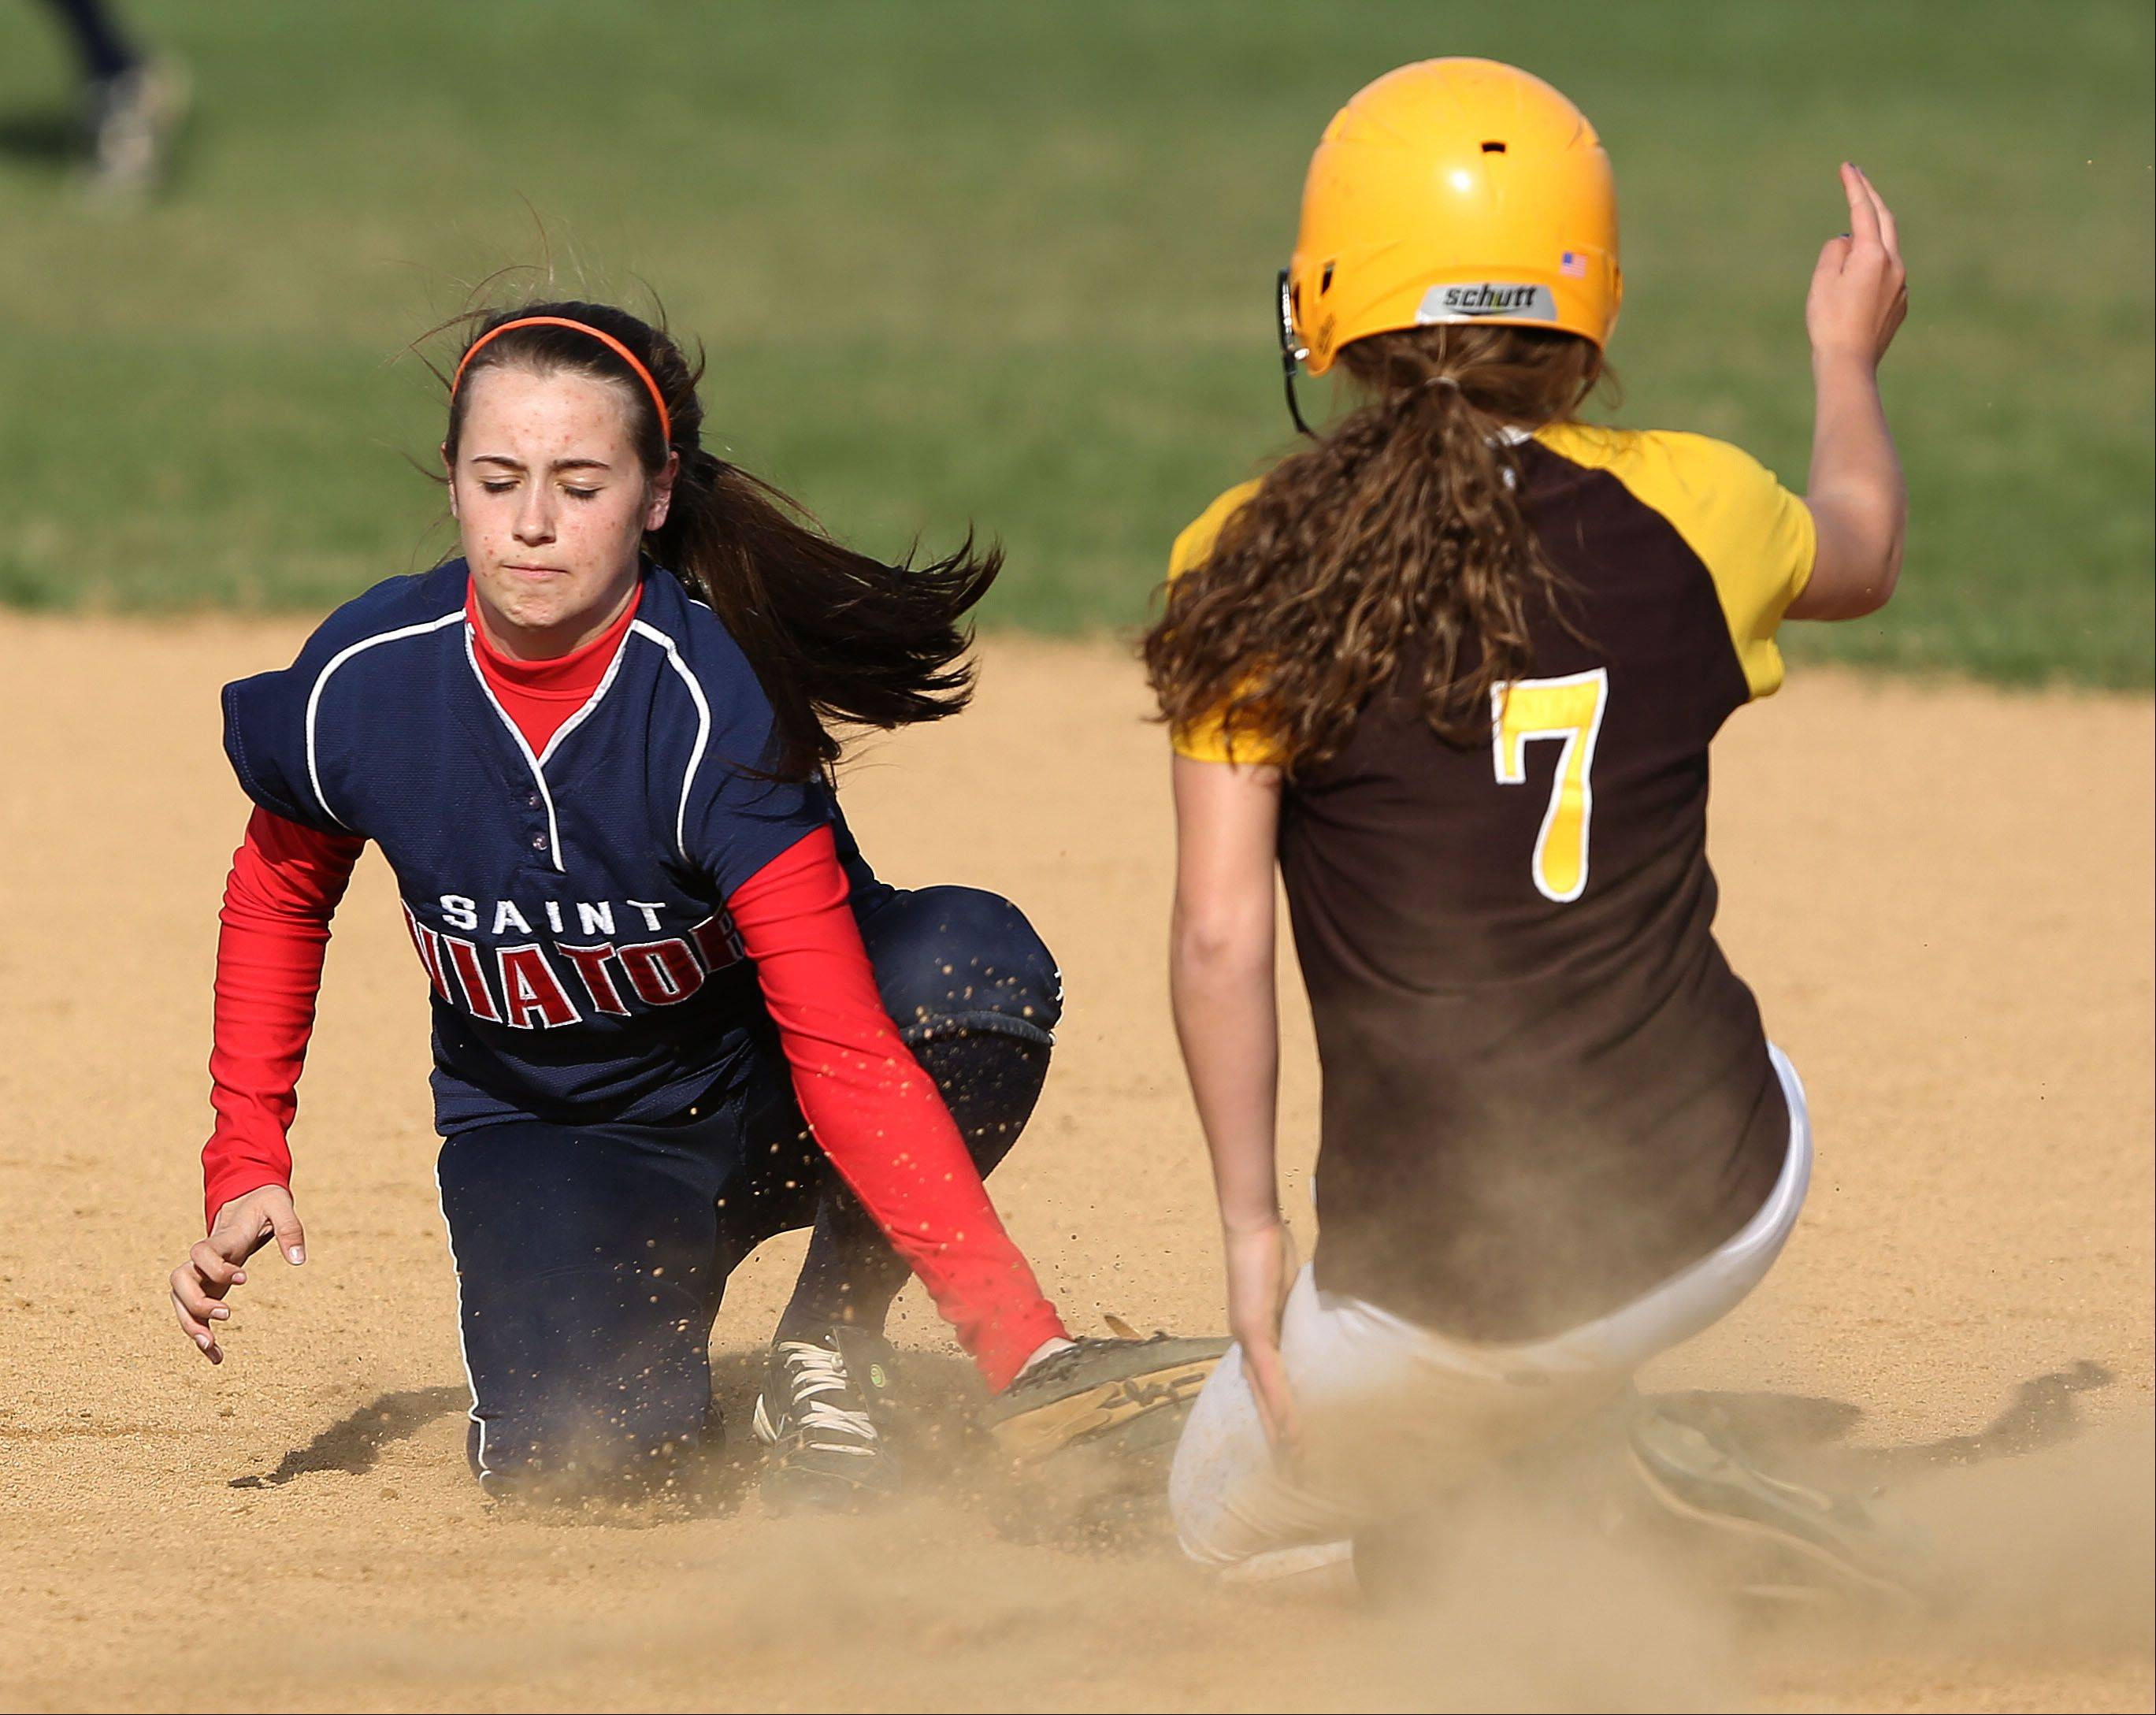 St. Viator' Tess Kaiser tries to put a tag on Carmel's Sam Melillo on Monday in Mundelein.